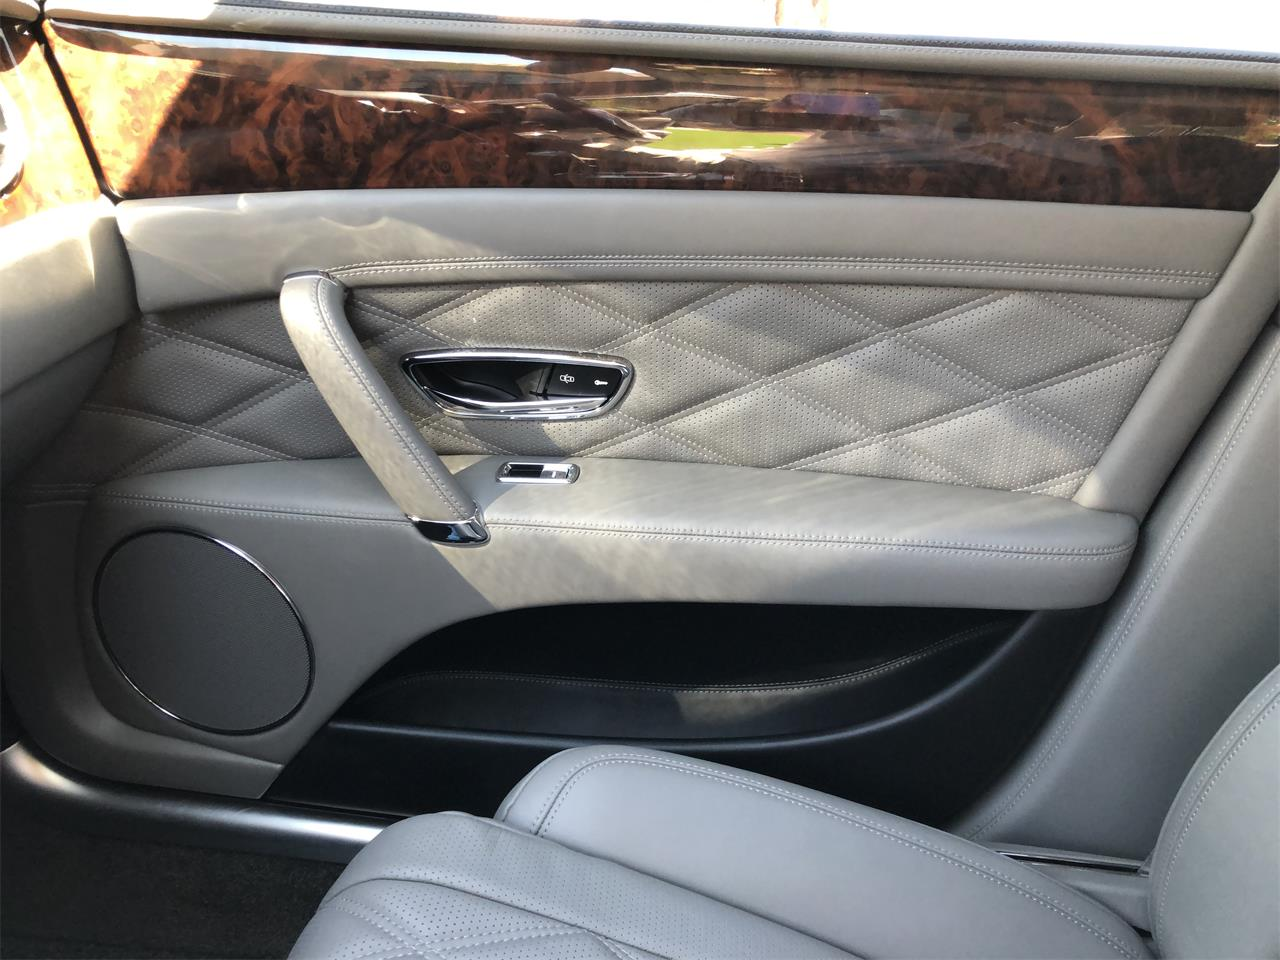 2014 Bentley Flying Spur (CC-1339358) for sale in Scottsdale, Arizona